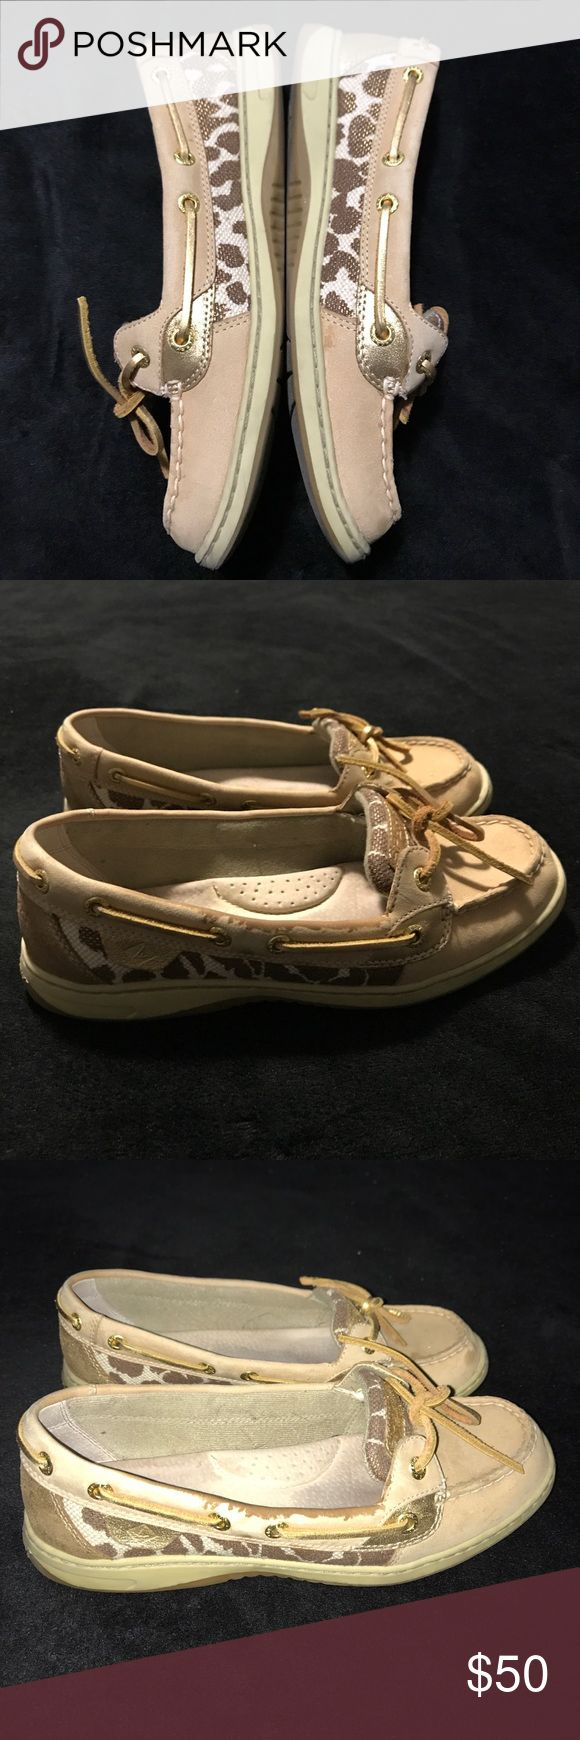 Cheetah print Sperry loafers Like new. Worn 2 times. Size 7.5. Bought for $80 at DSW asking $50 Sperry Top-Sider Shoes Flats & Loafers